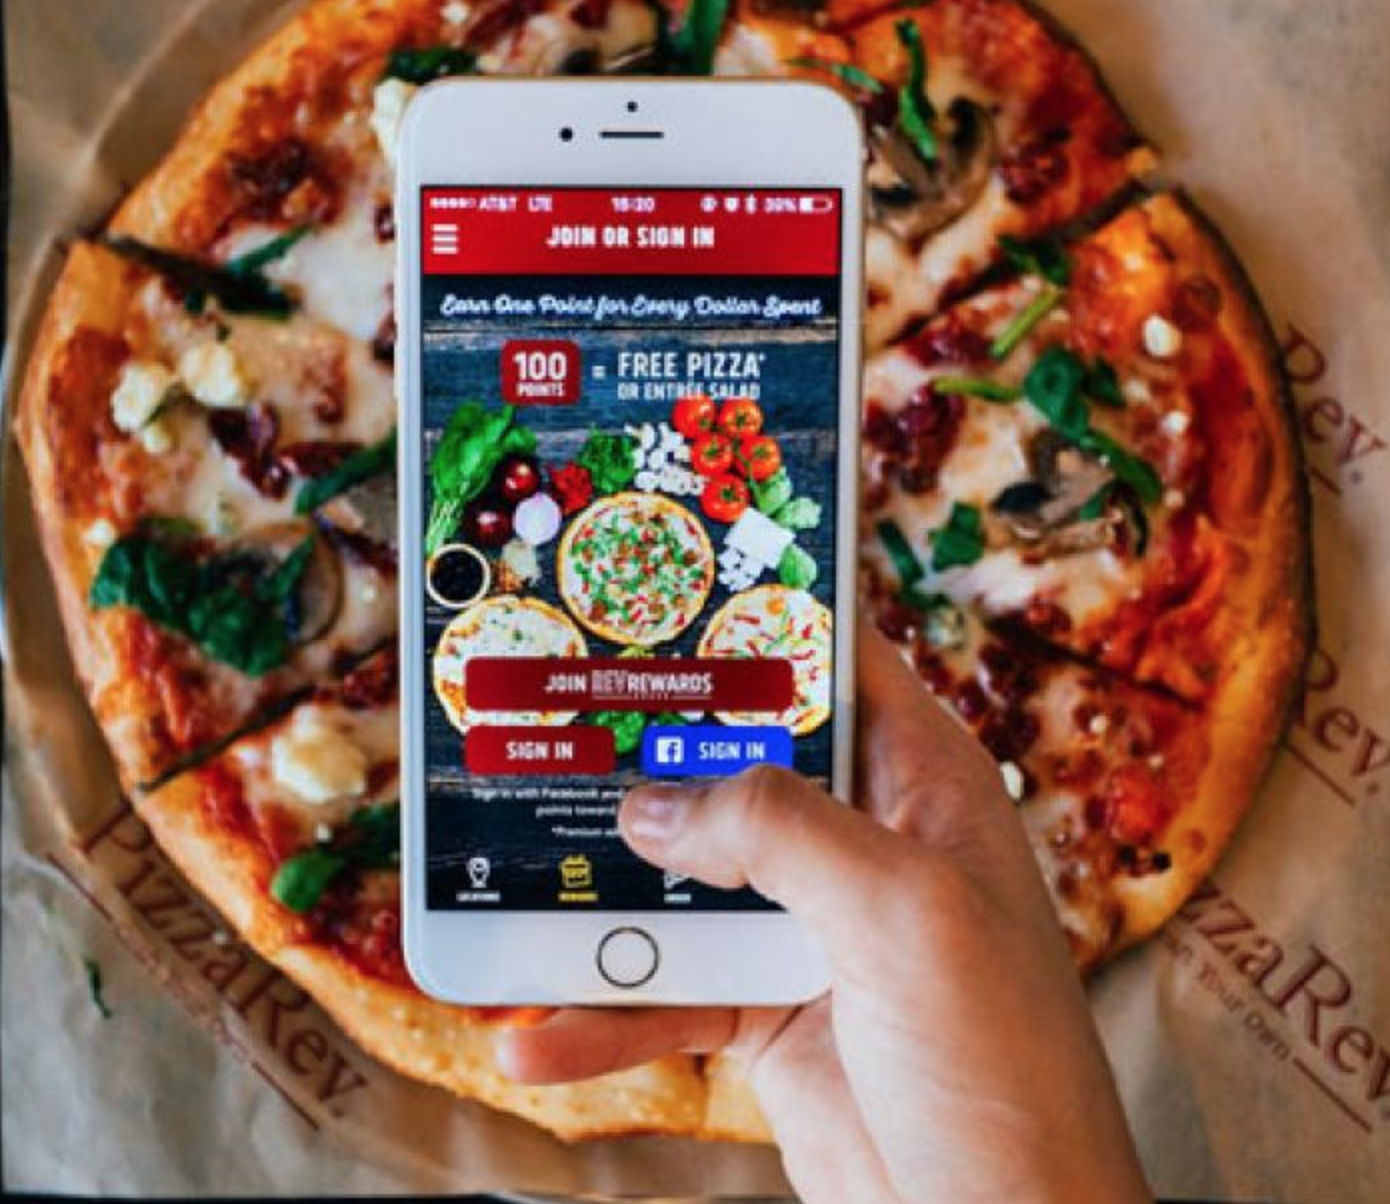 Fast food app with pizza in the background